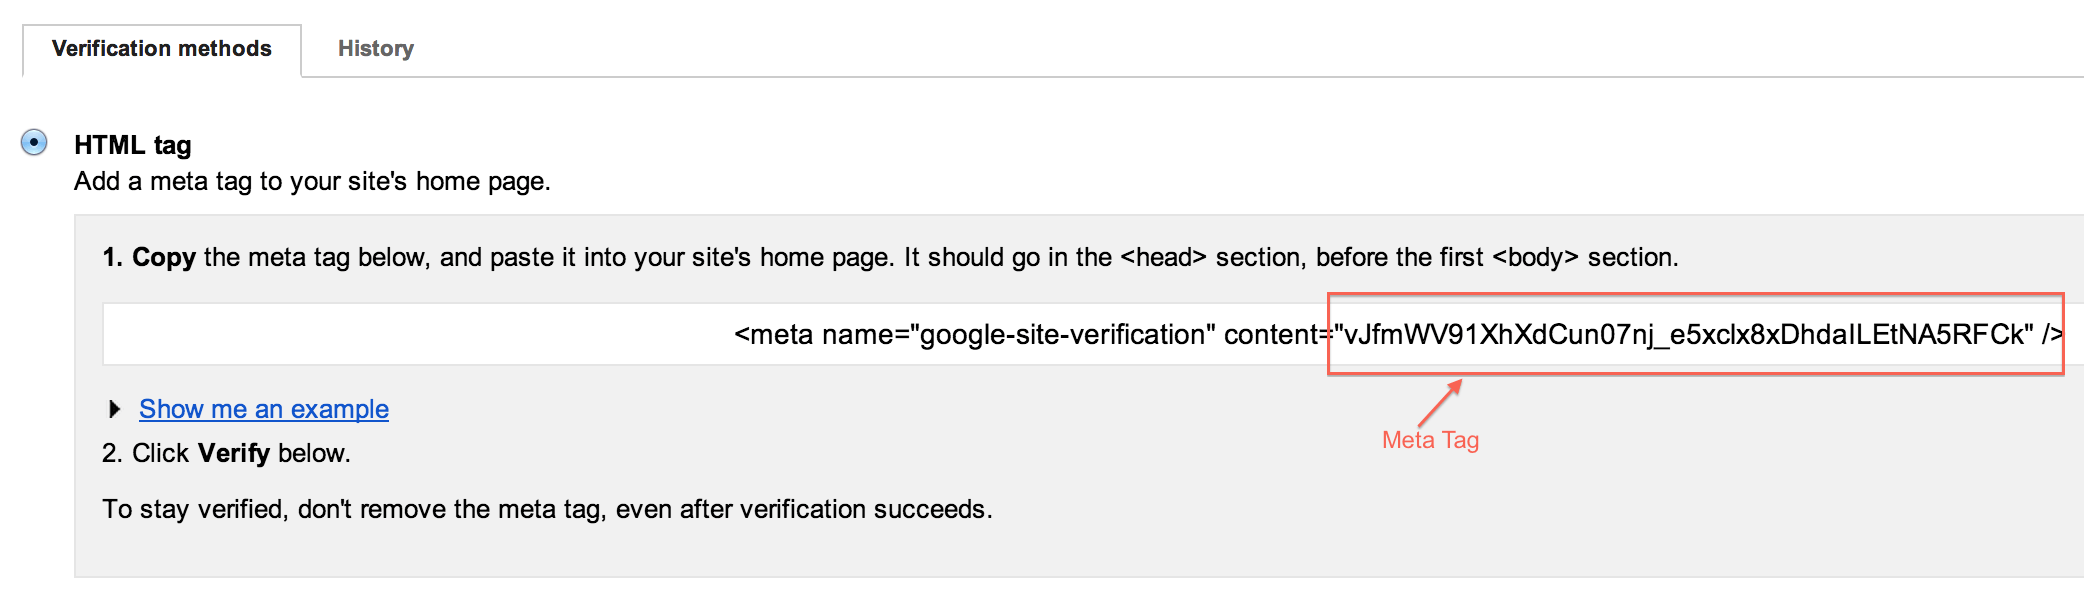 Google Verification Meta Tag - All in One Webmaster